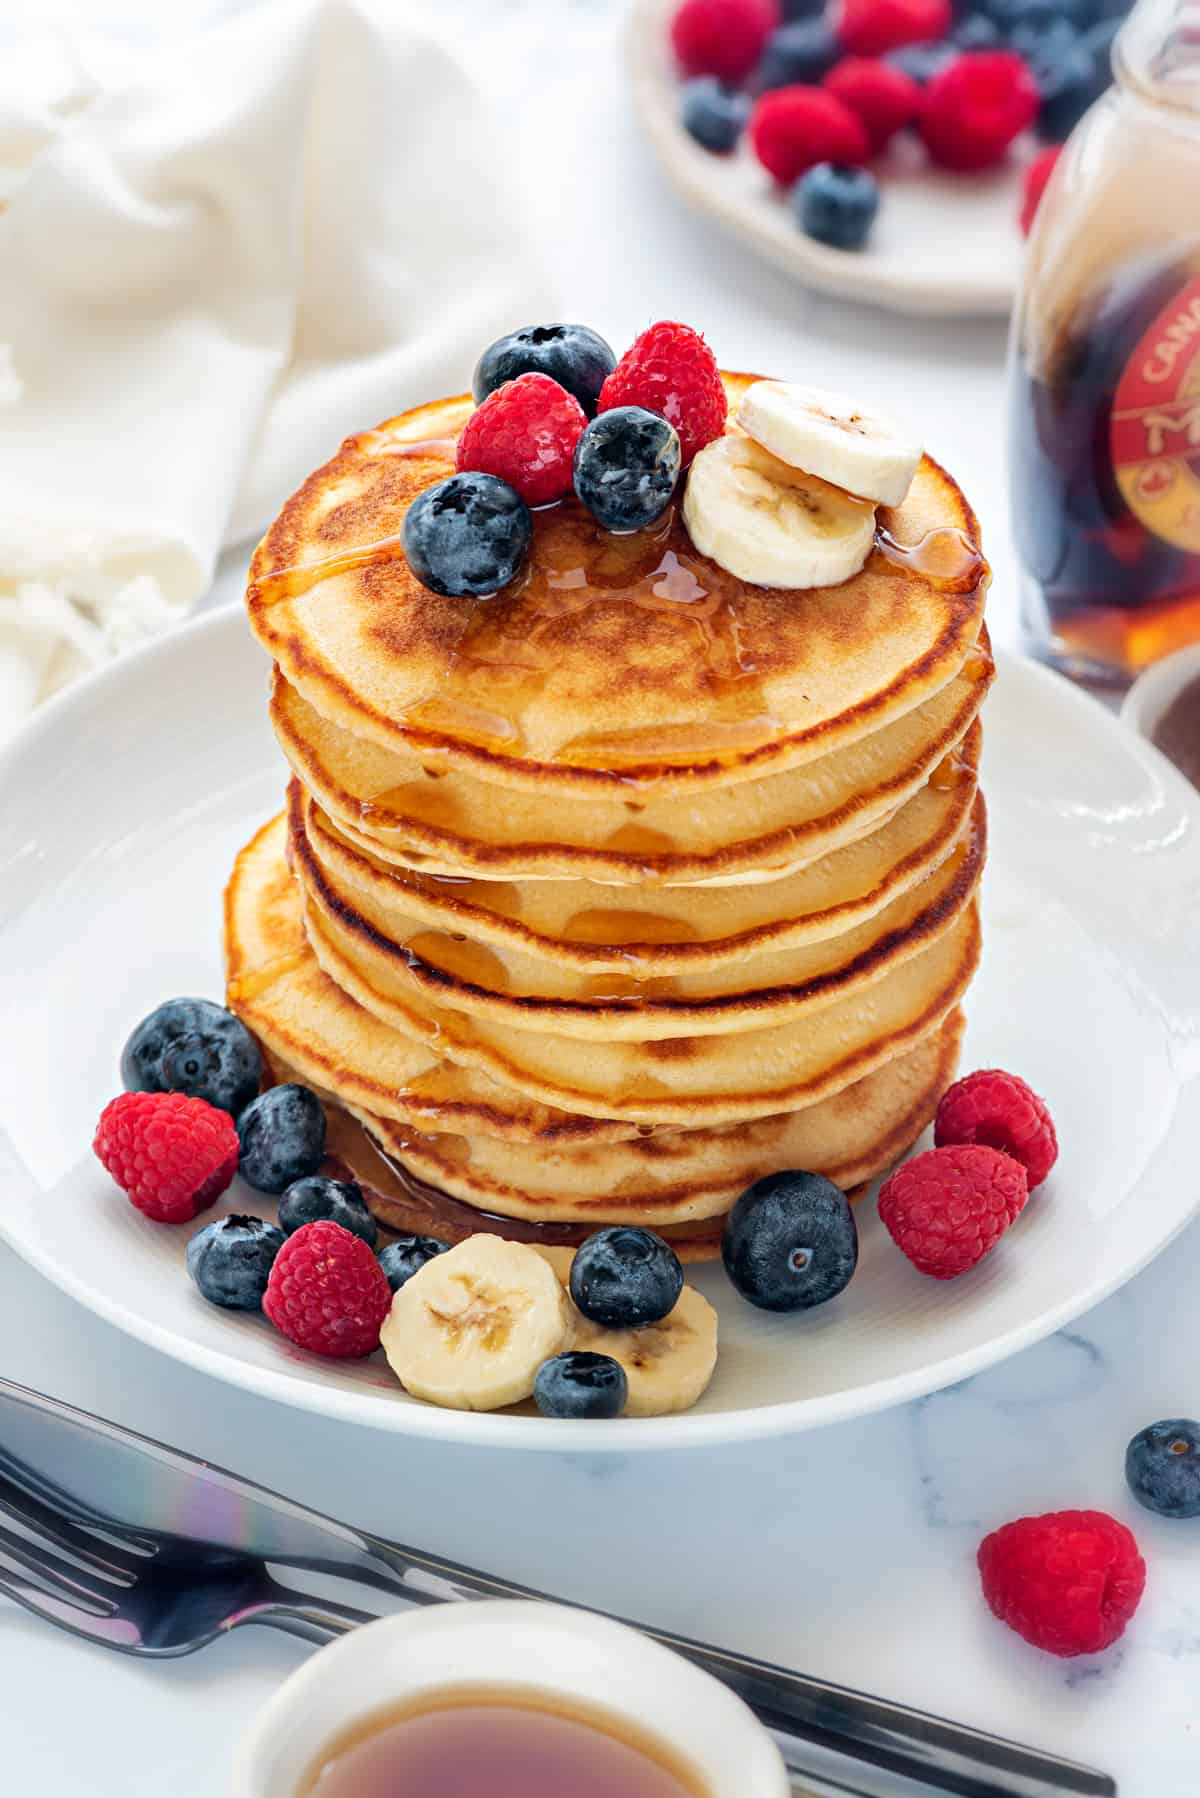 Stacked pancakes topped with maple syrup in white plate with berries, fork and knife on side.